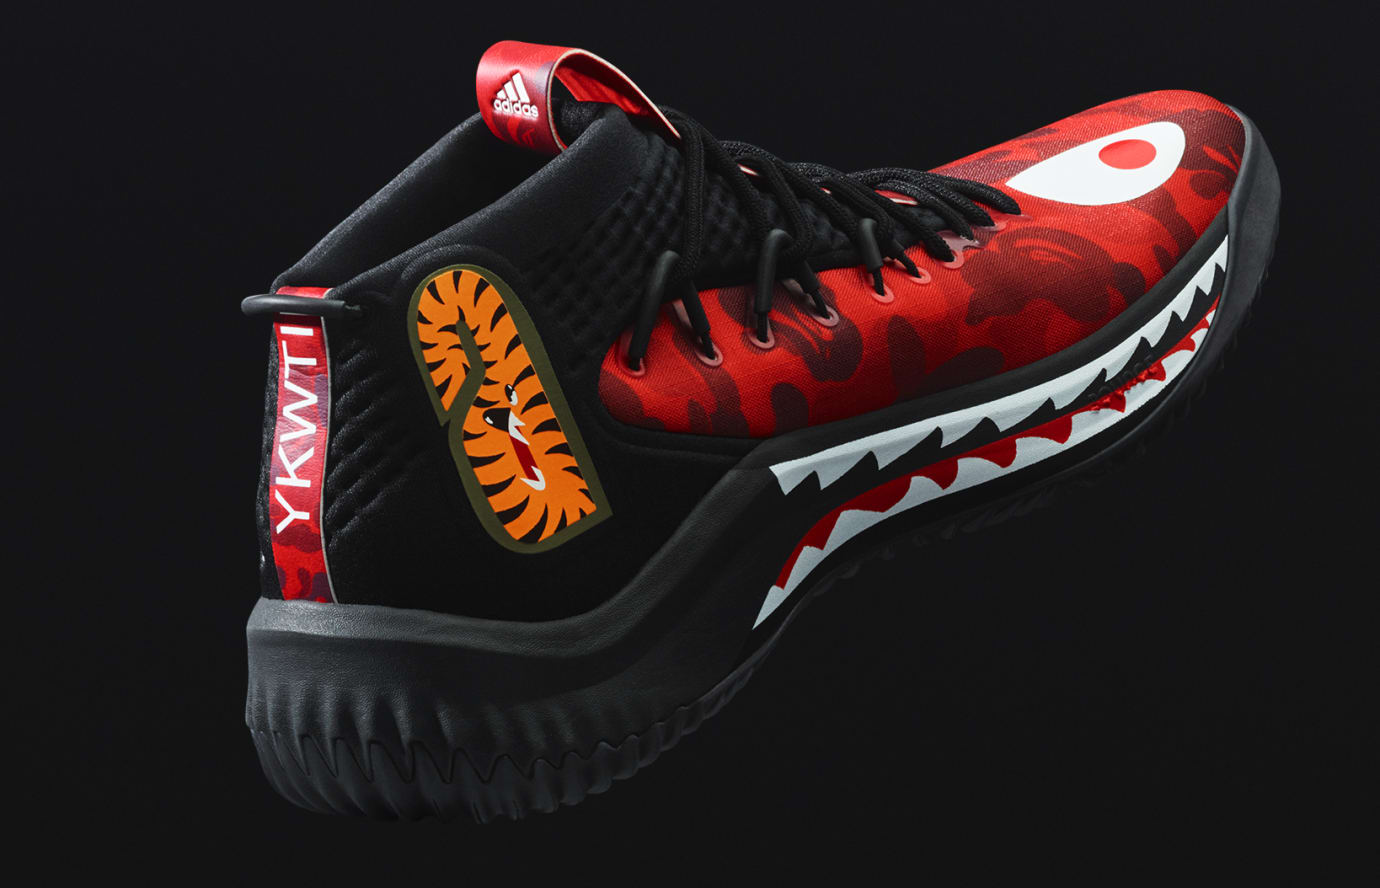 buy popular 26839 b8fc0 Image via Adidas adidas-dame-4-bape-red